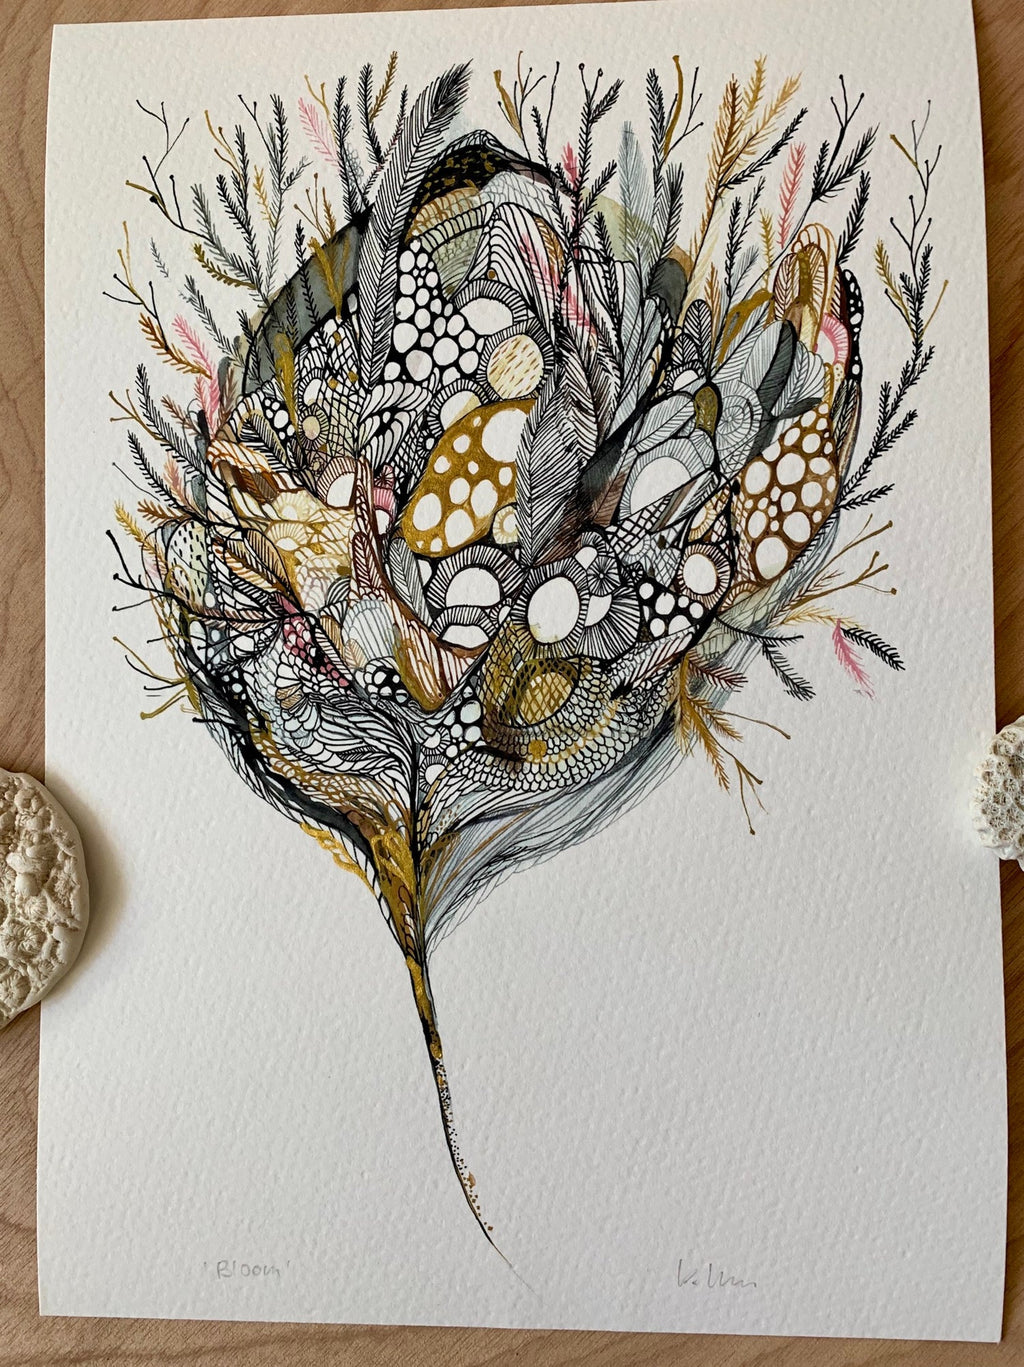 'Bloom' with handpainted gold detail print by Katherine Wheeler